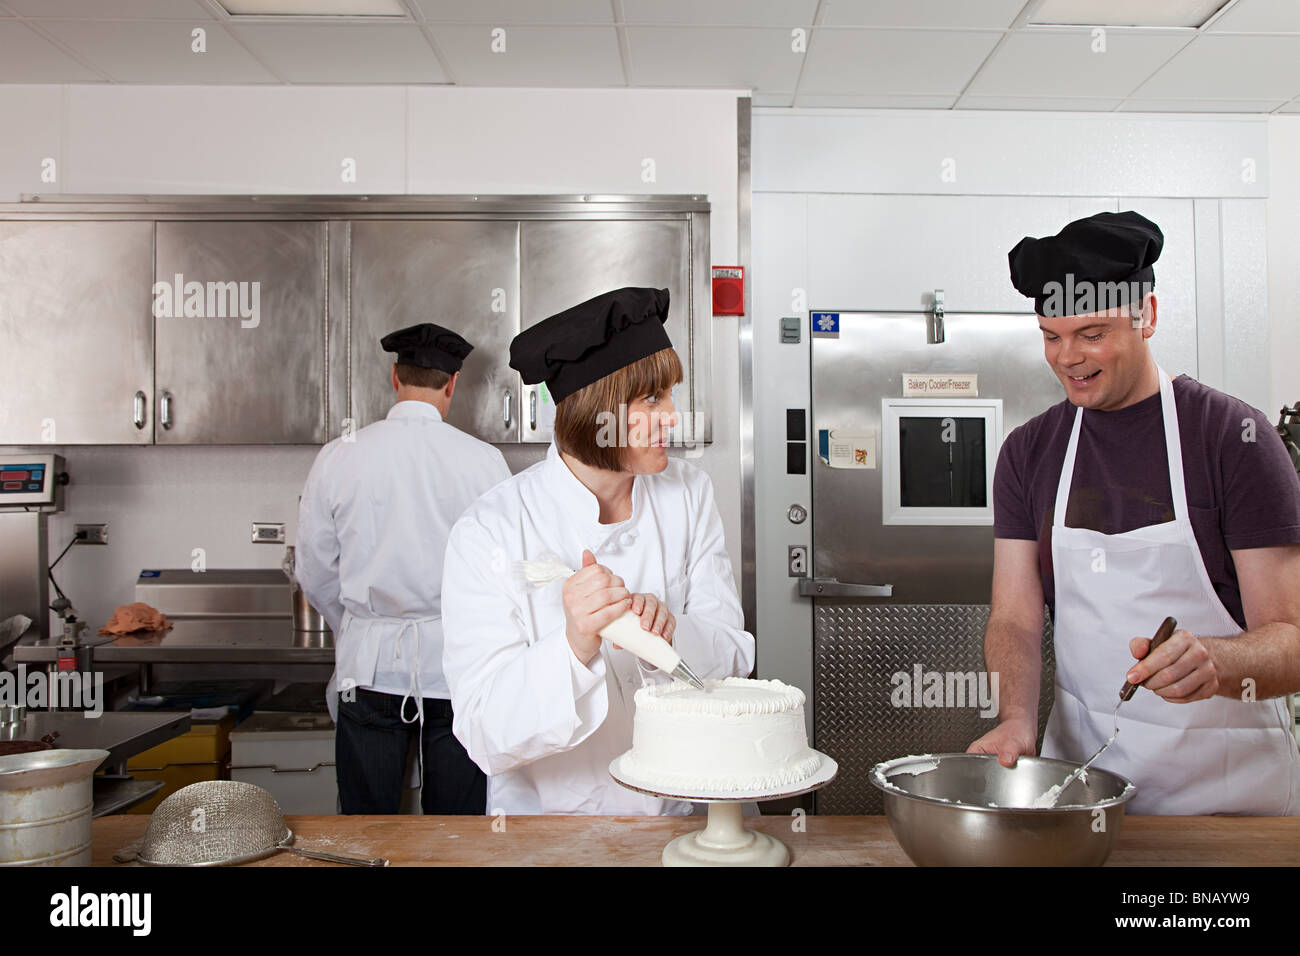 Making cake in commercial kitchen - Stock Image